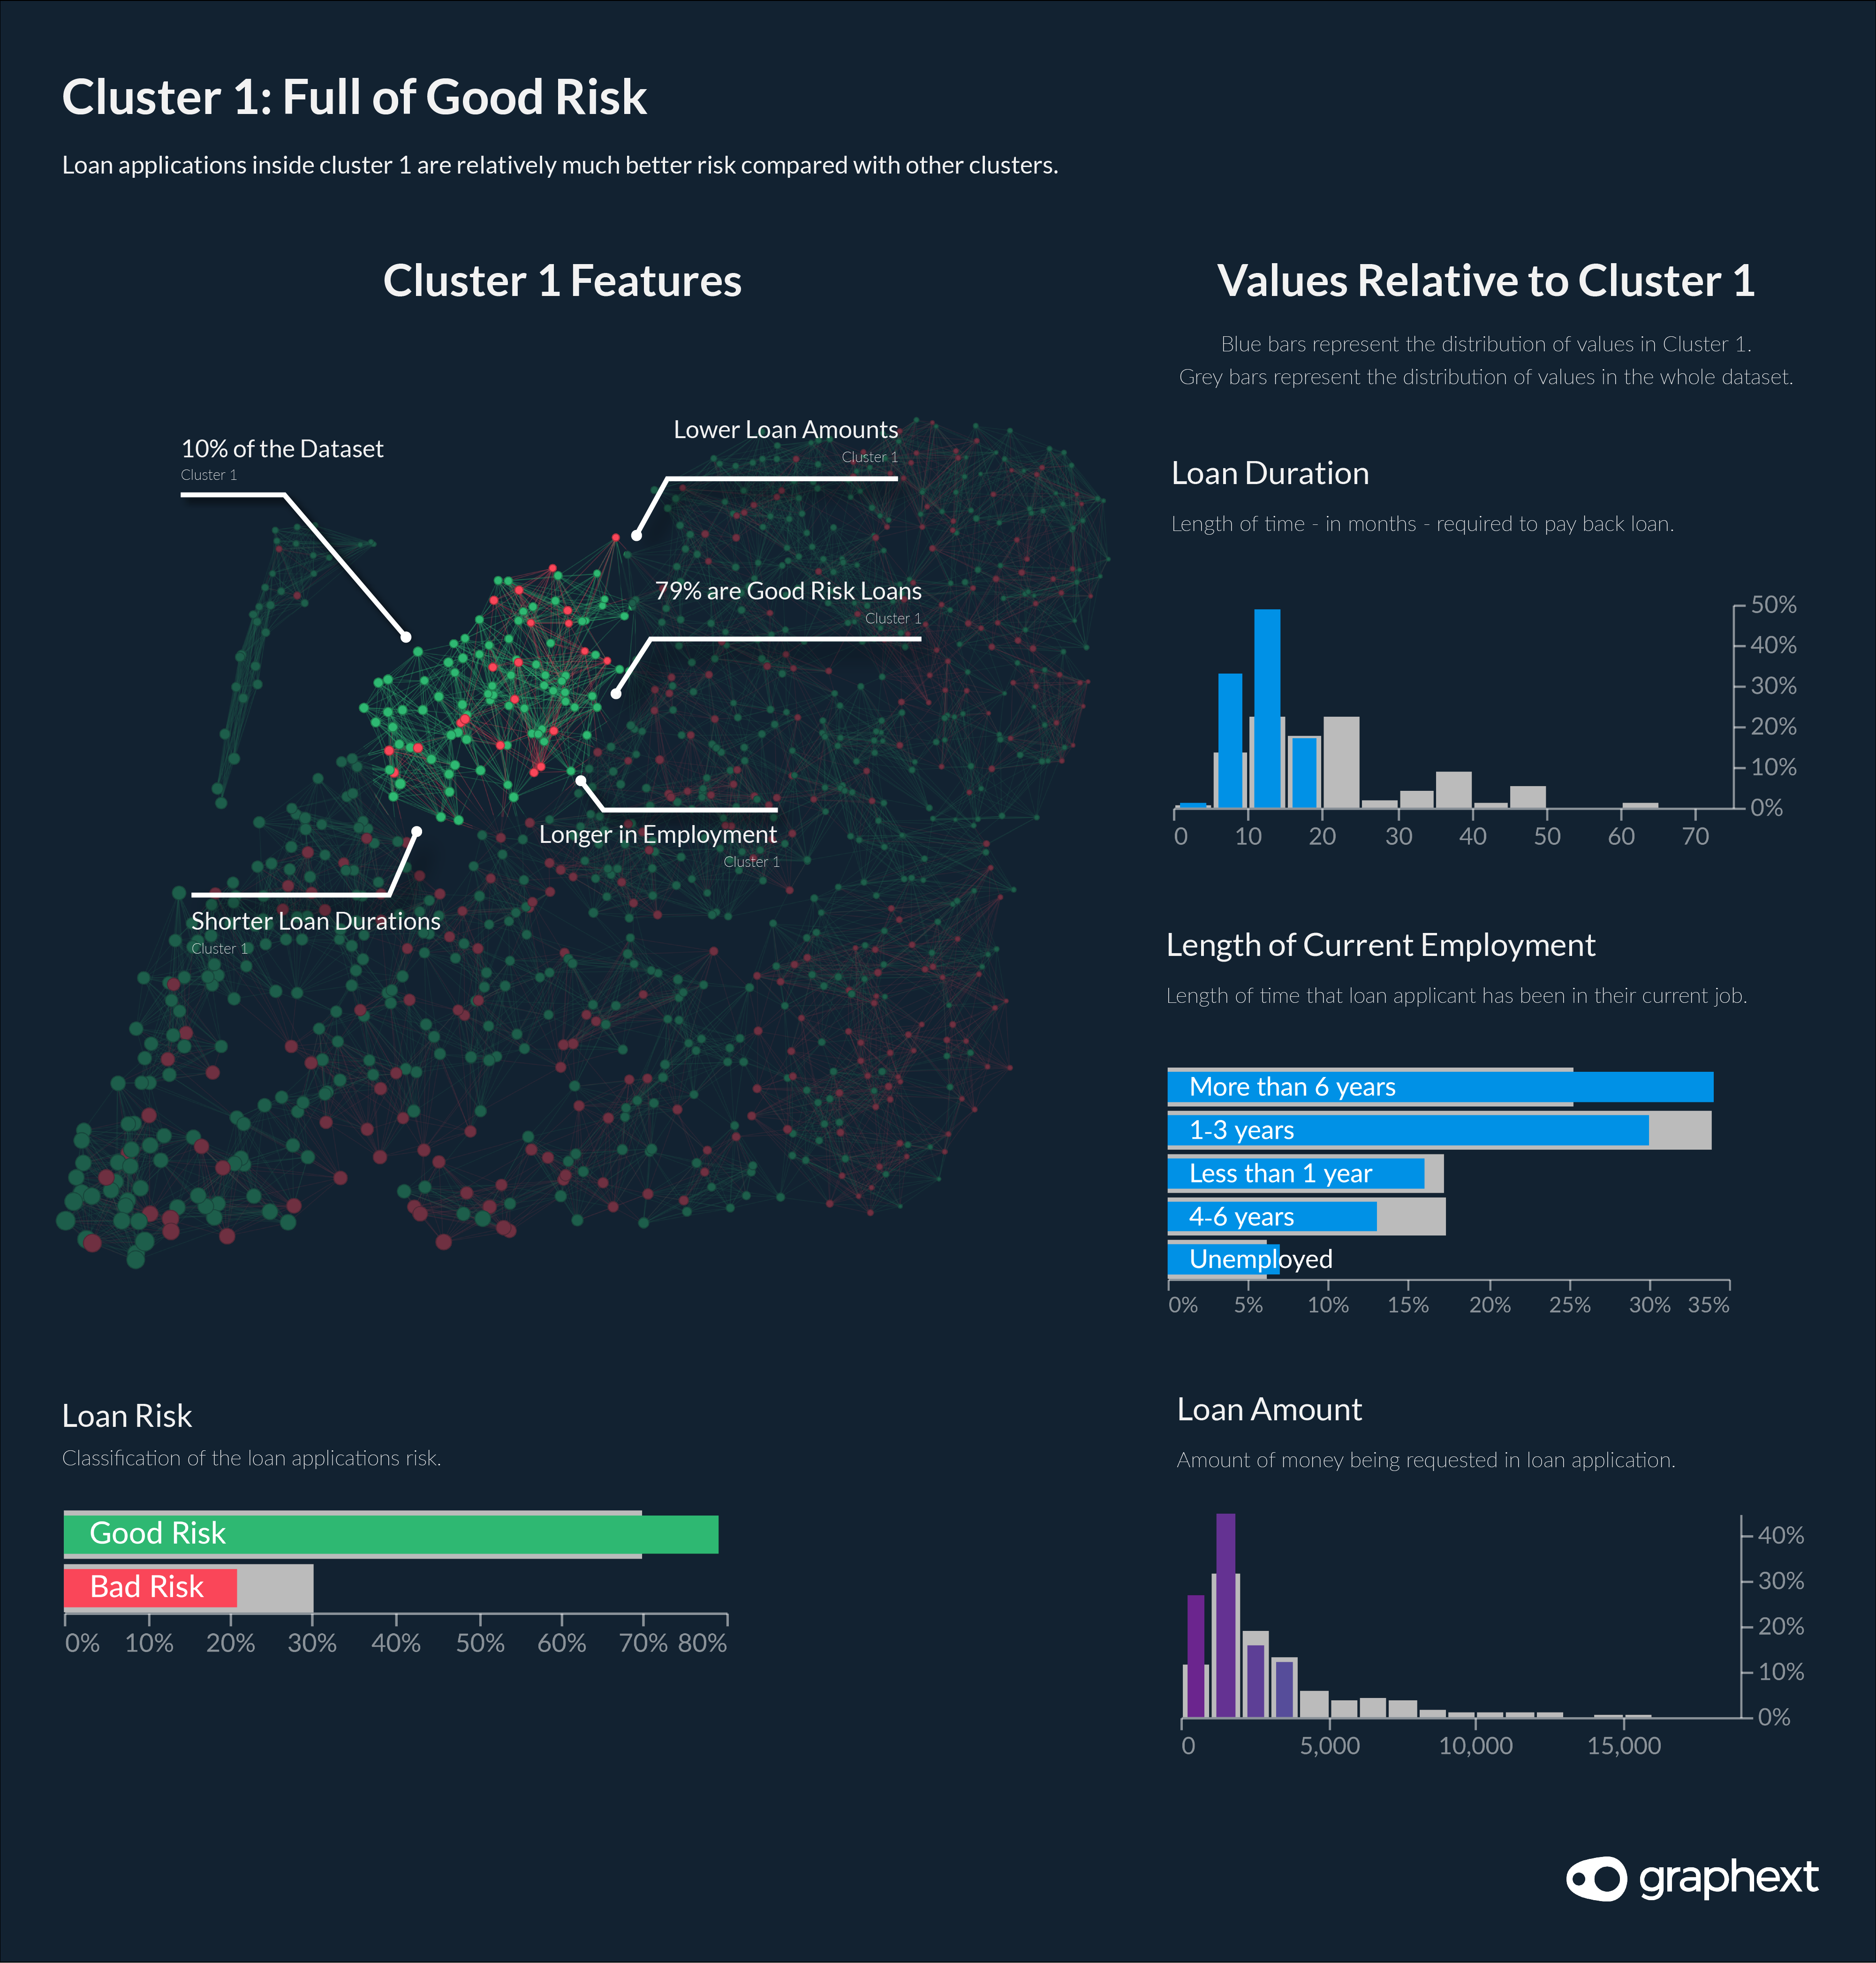 An infographic showing how values in cluster 1 - a good risk cluster - are different to loan applications in the whole dataset.